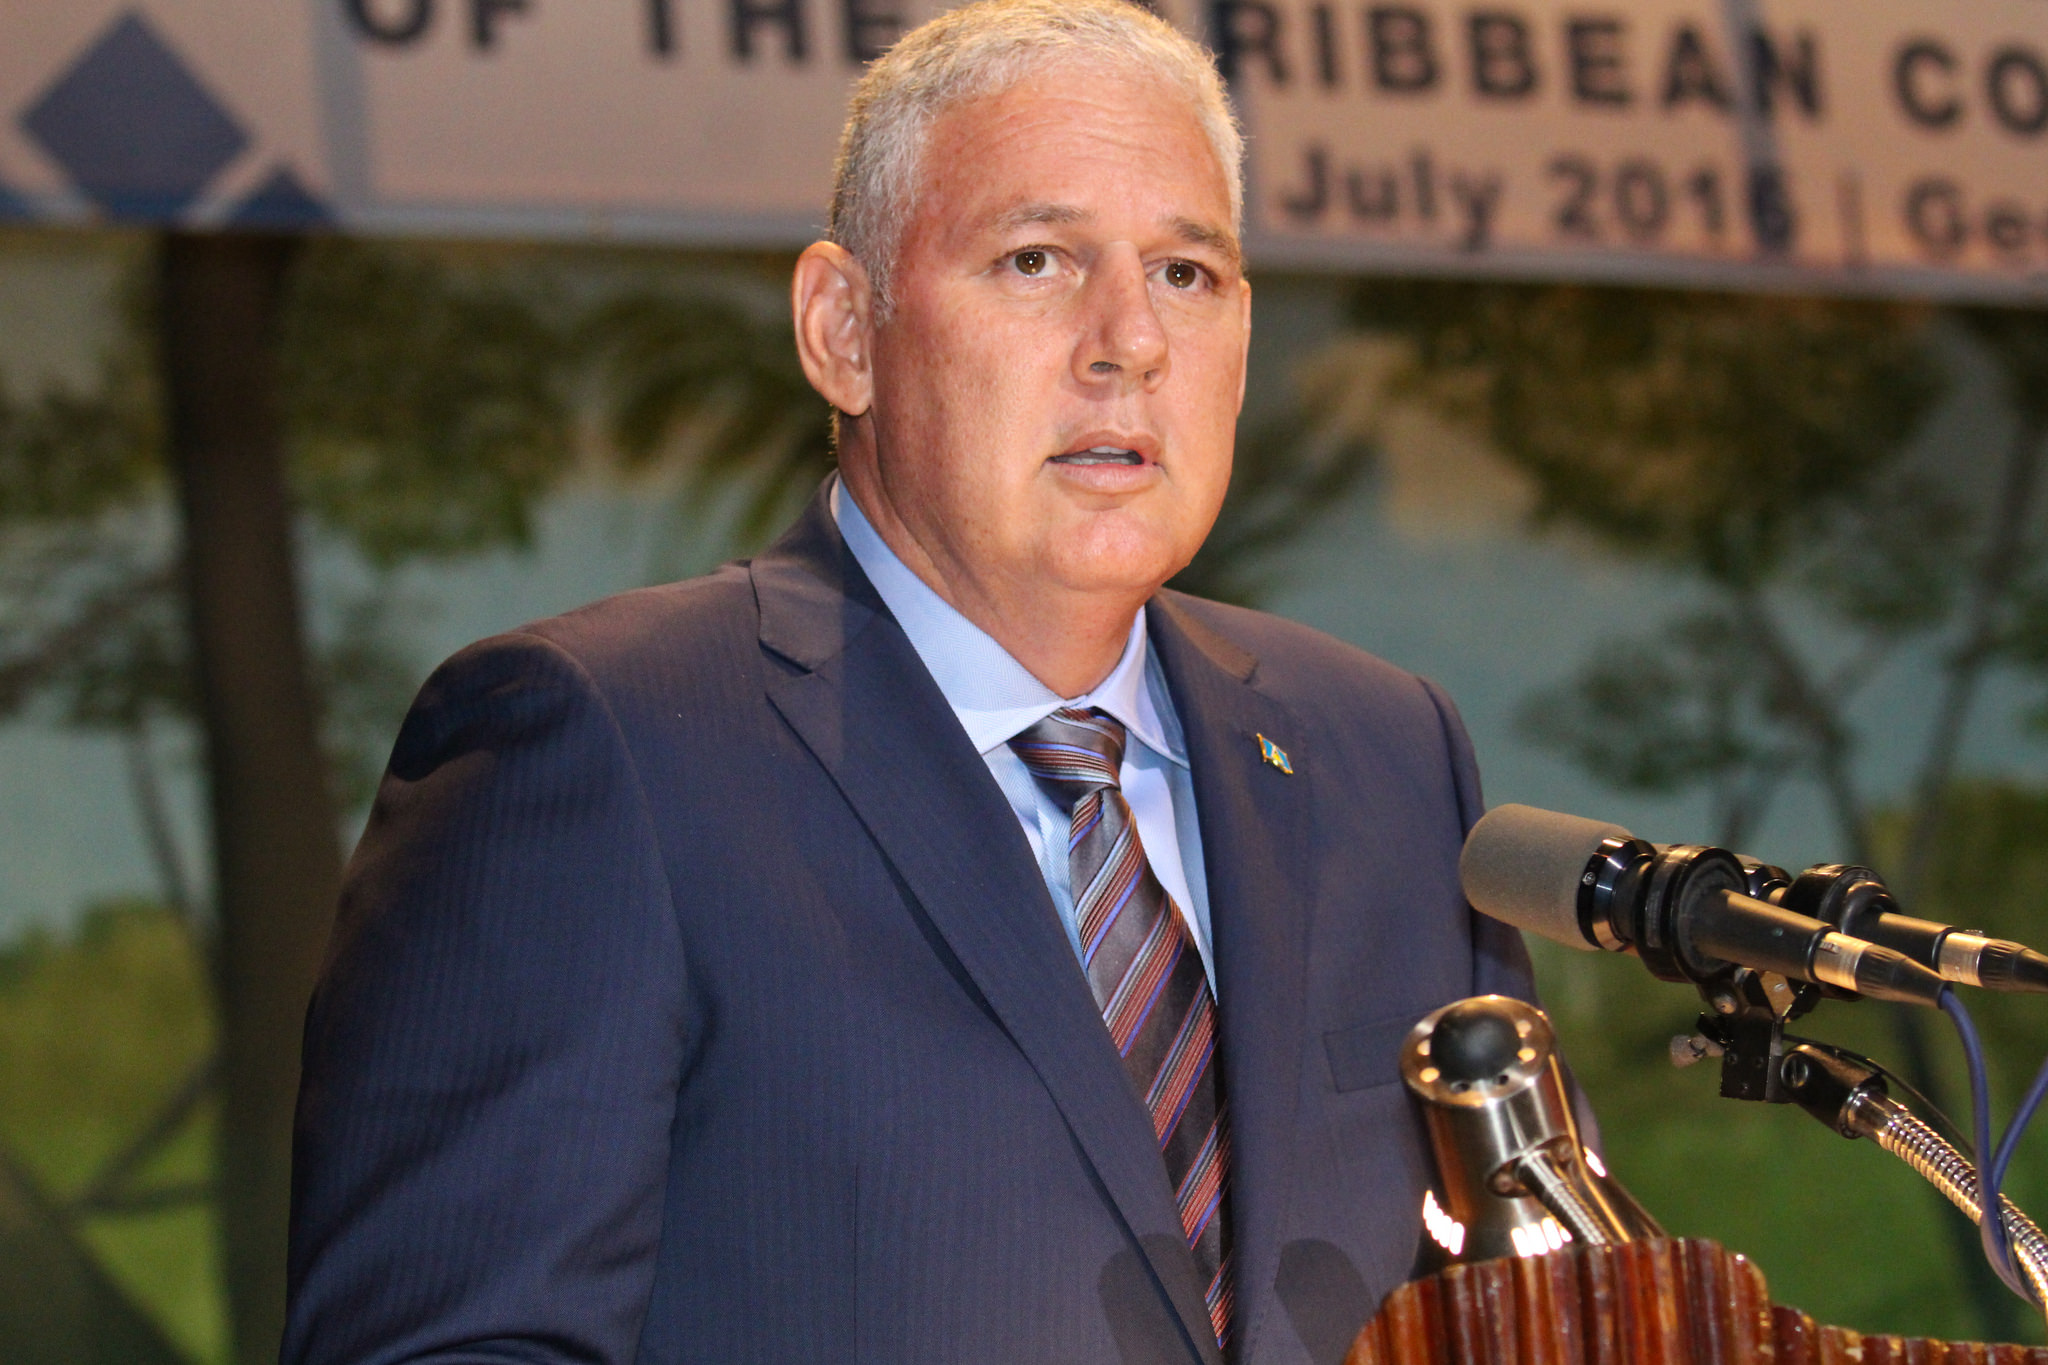 Photo of Remarks by the Prime Minister of Saint Lucia, Honourable Allen Chastanet  At the 37th Regular Meeting of the Conference of Heads of Government  of the Caribbean Community (CARICOM) Georgetown, Guyana. 4-7 July 2016.